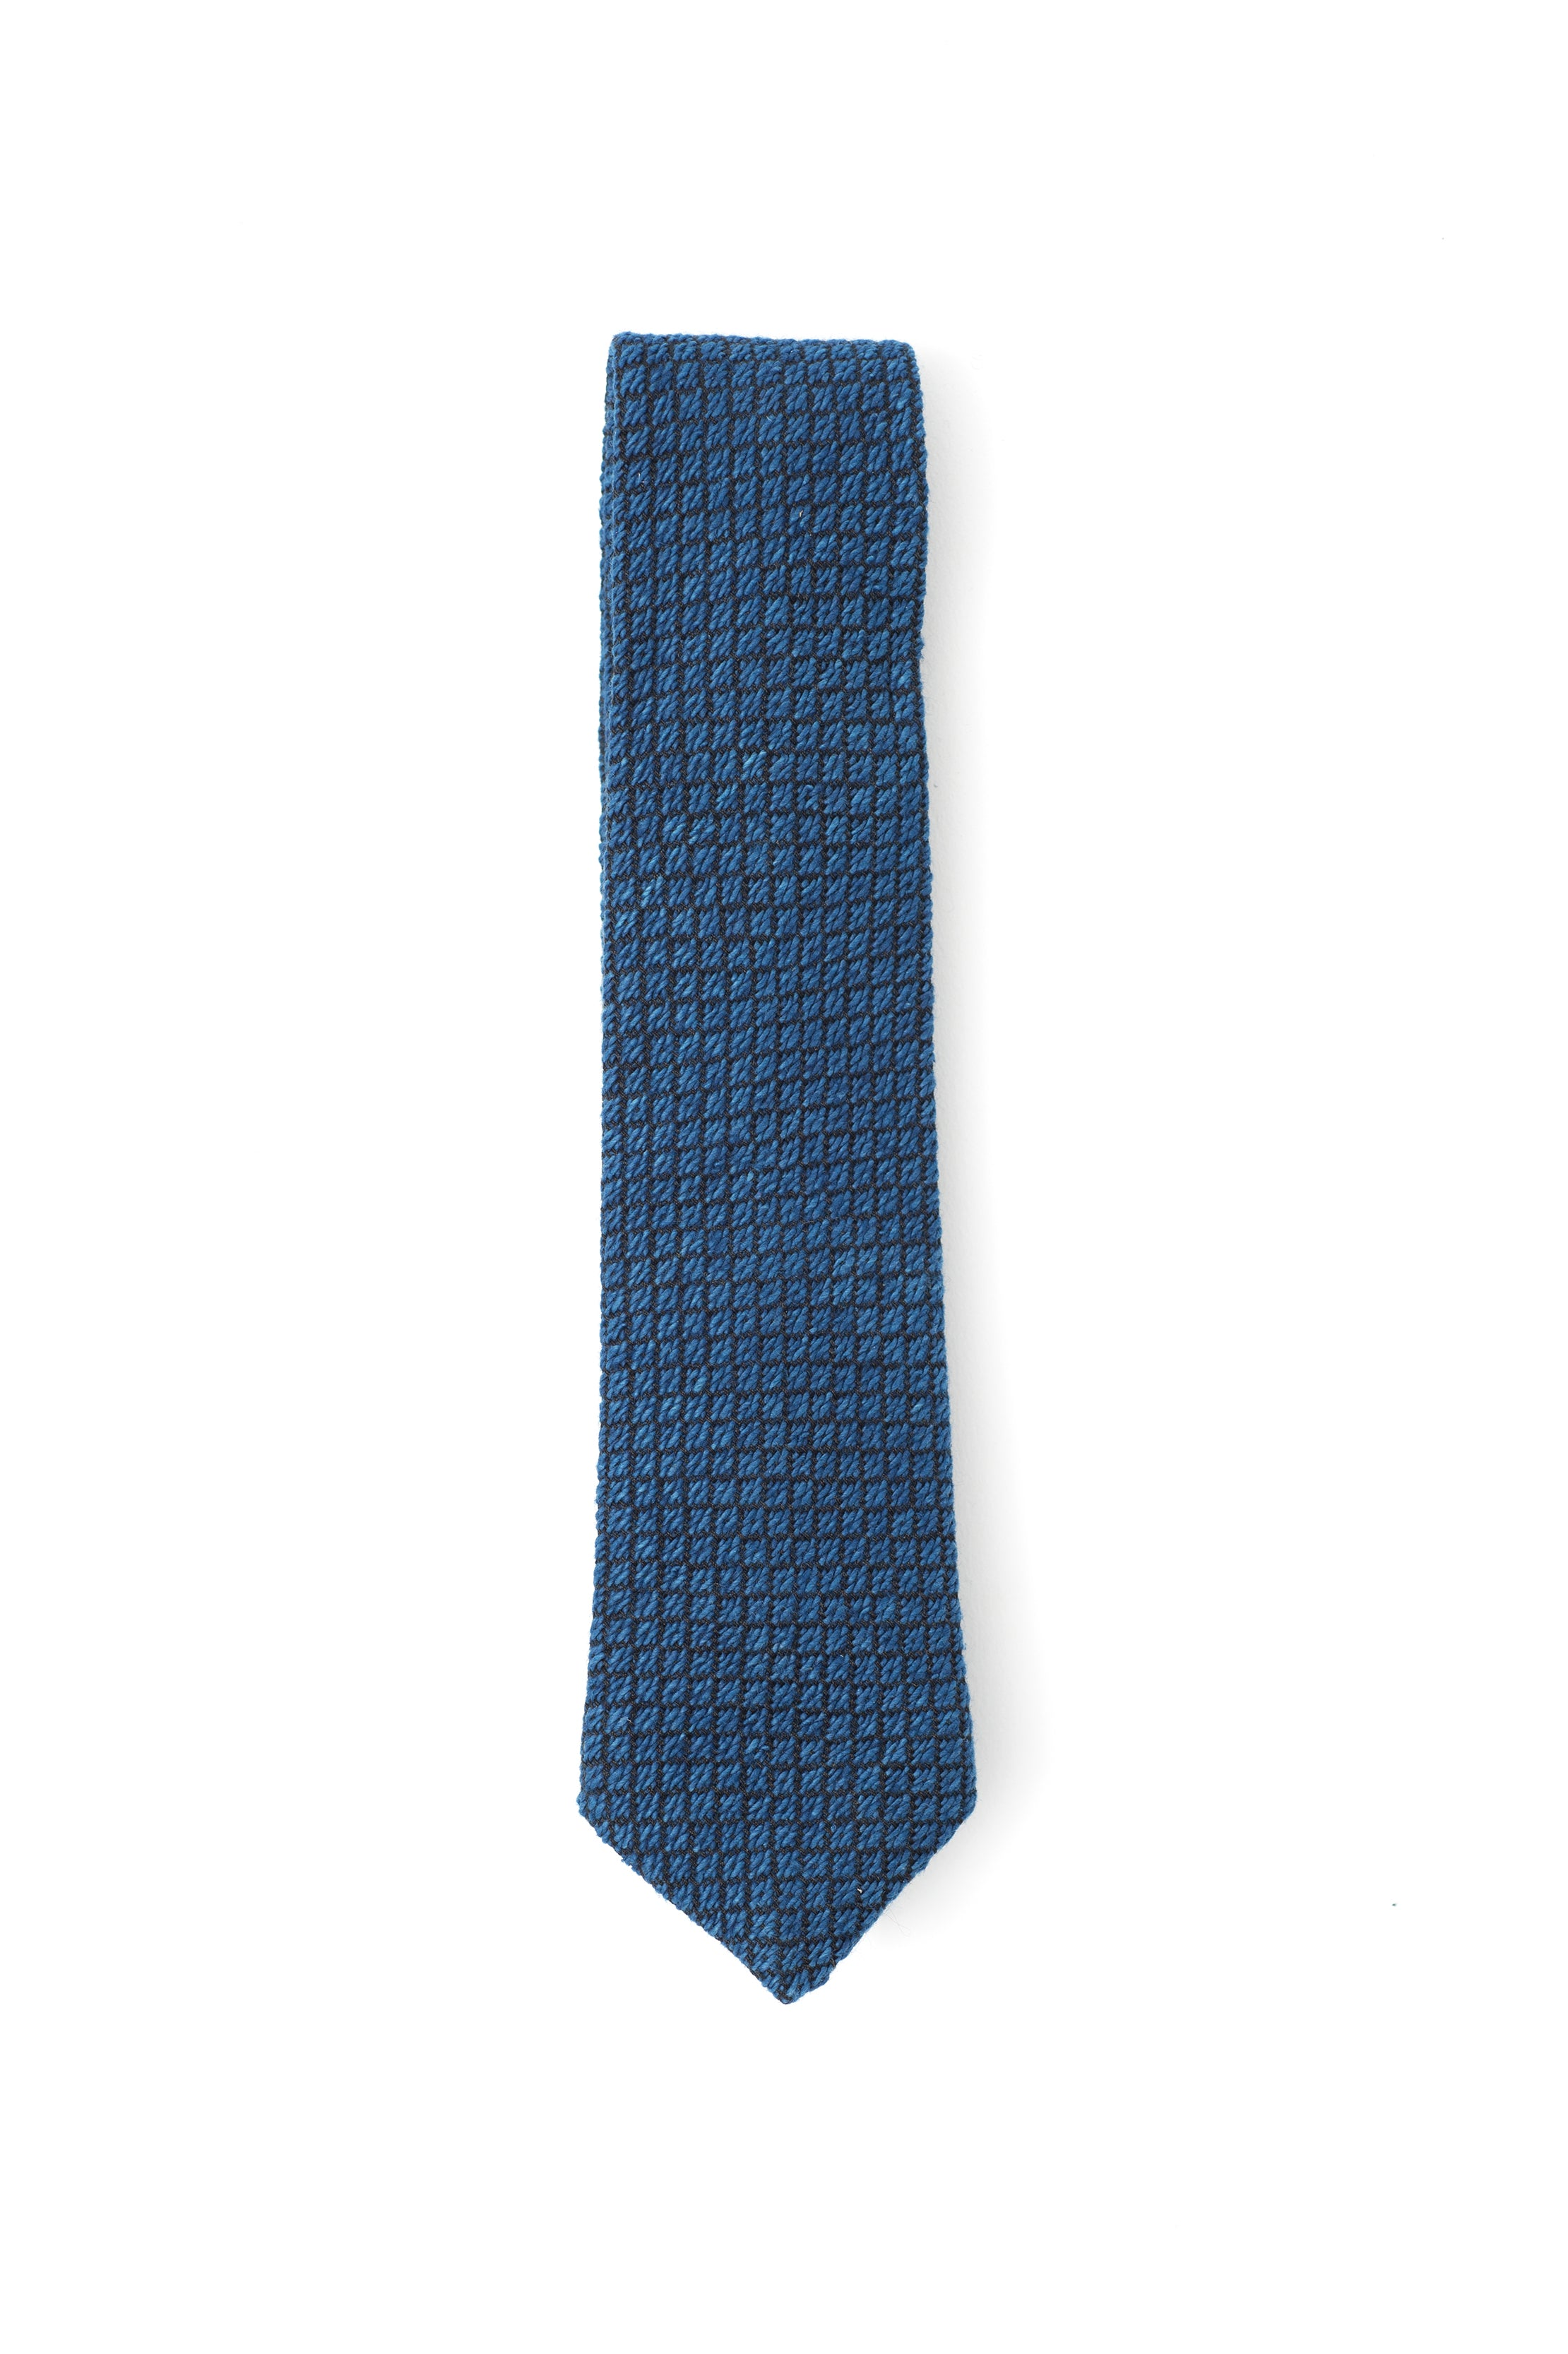 INDIGO PEOPLE - DIAMONDS NECKTIE – HAND LOOMED